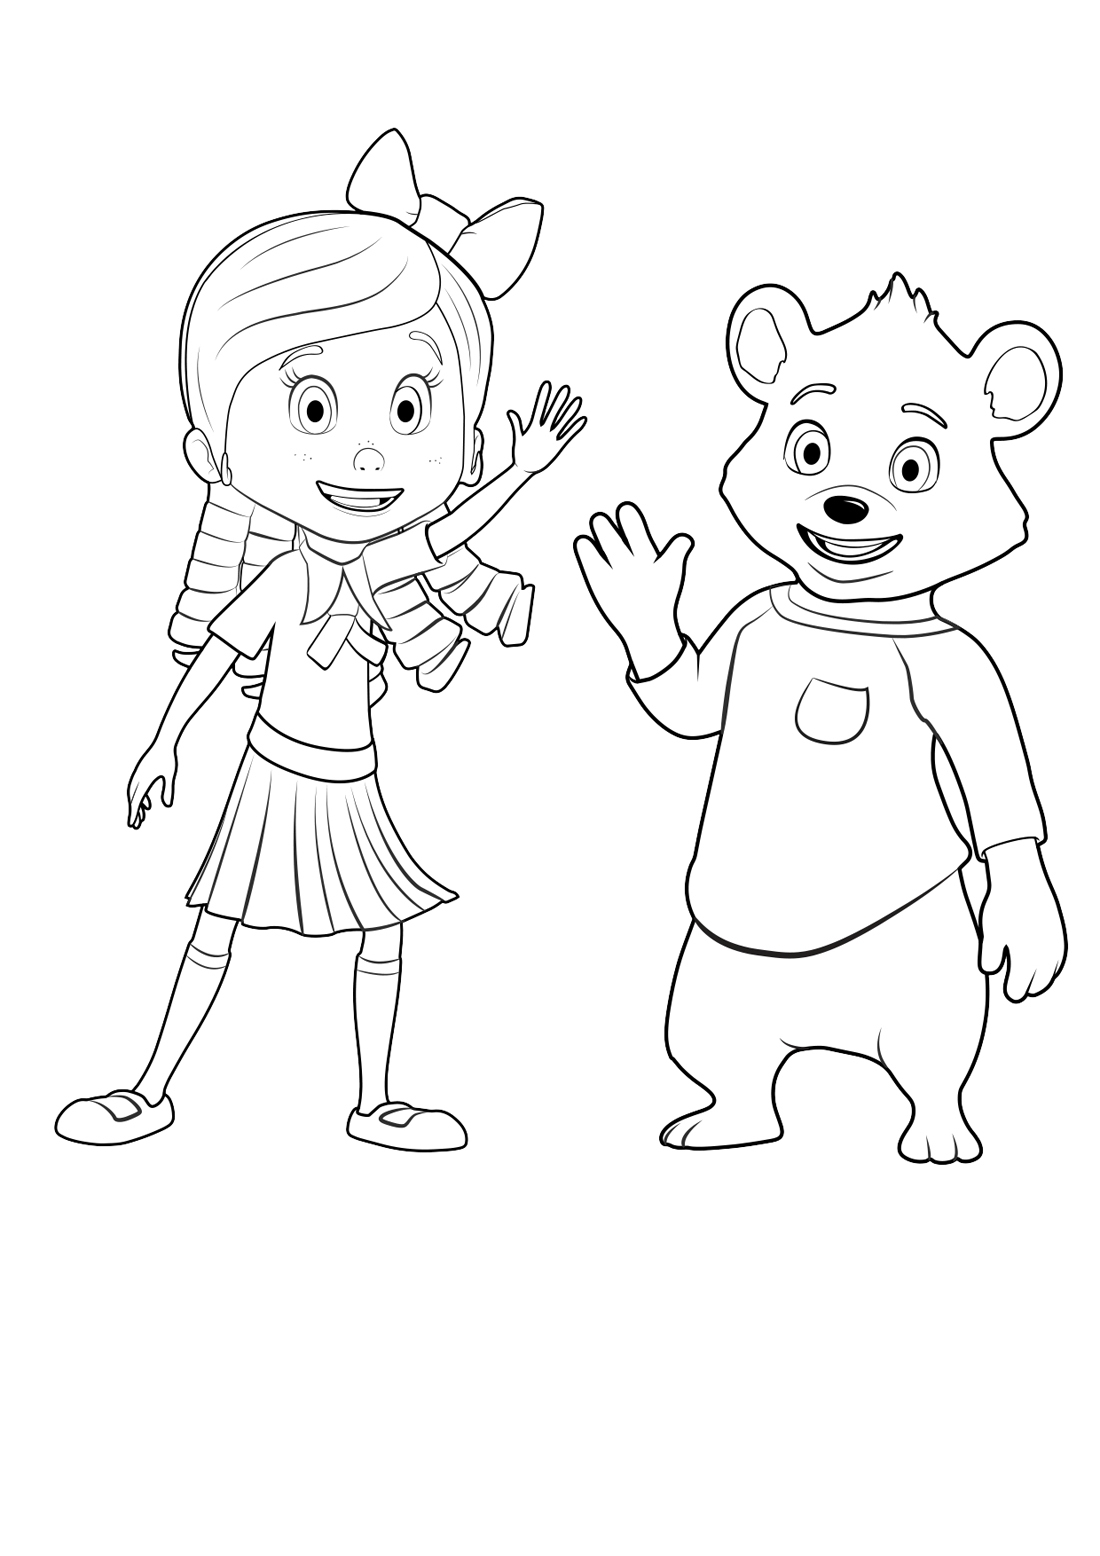 Goldie and Bear Coloring Pages - Gol and Bear Coloring Pages to and Print for Free